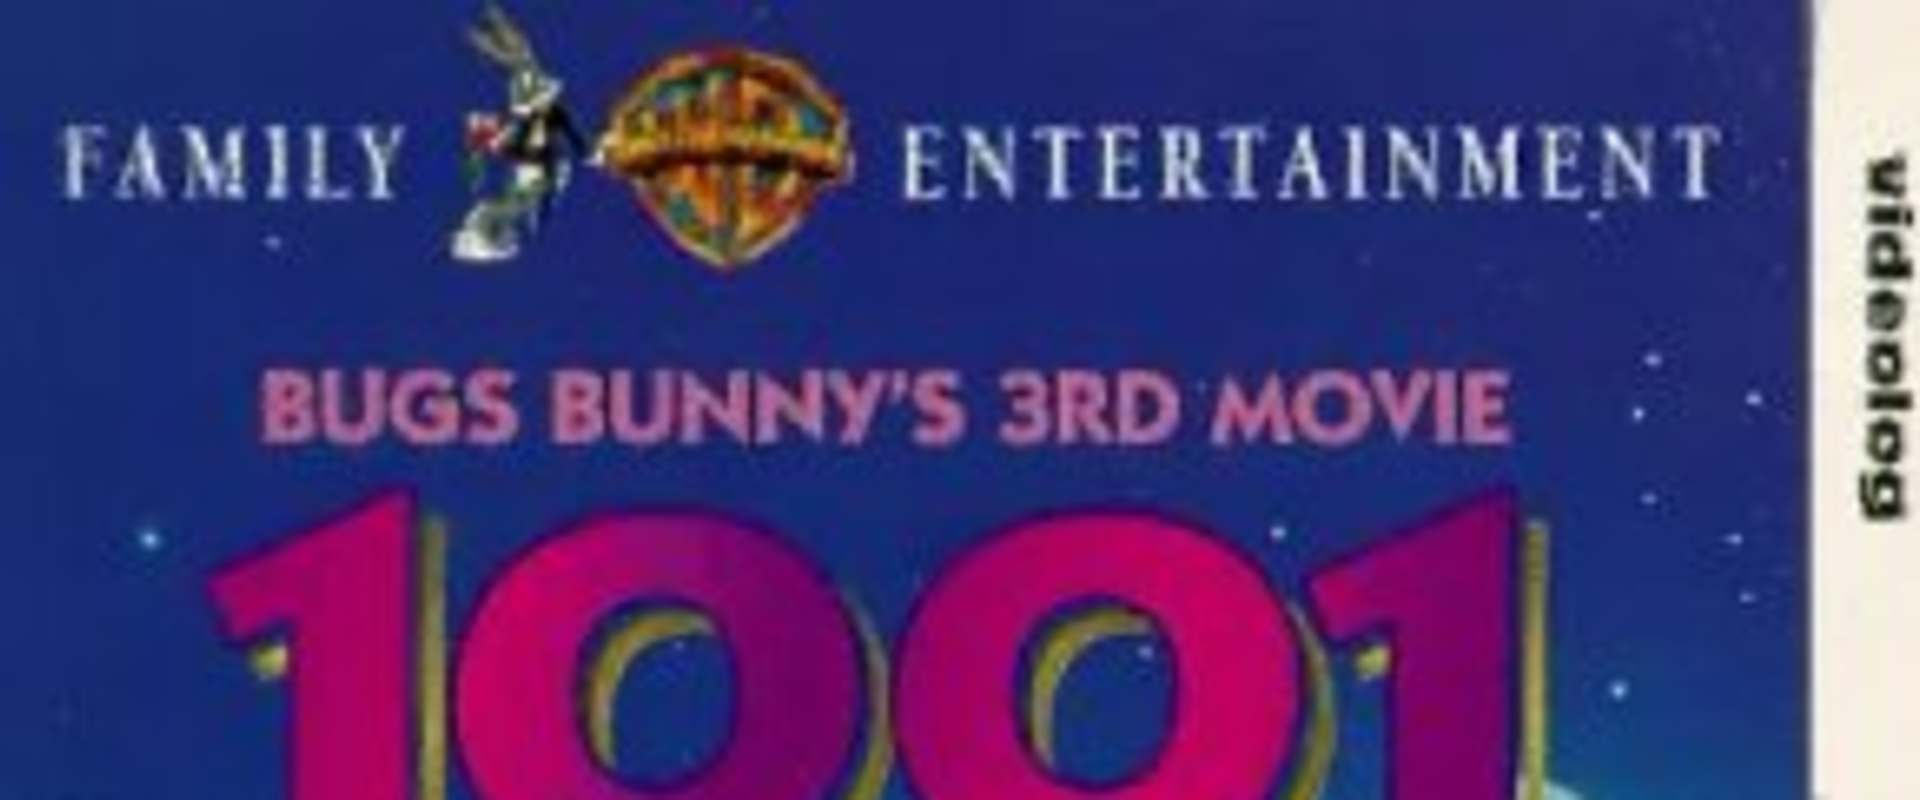 Bugs Bunny's 3rd Movie: 1001 Rabbit Tales background 2